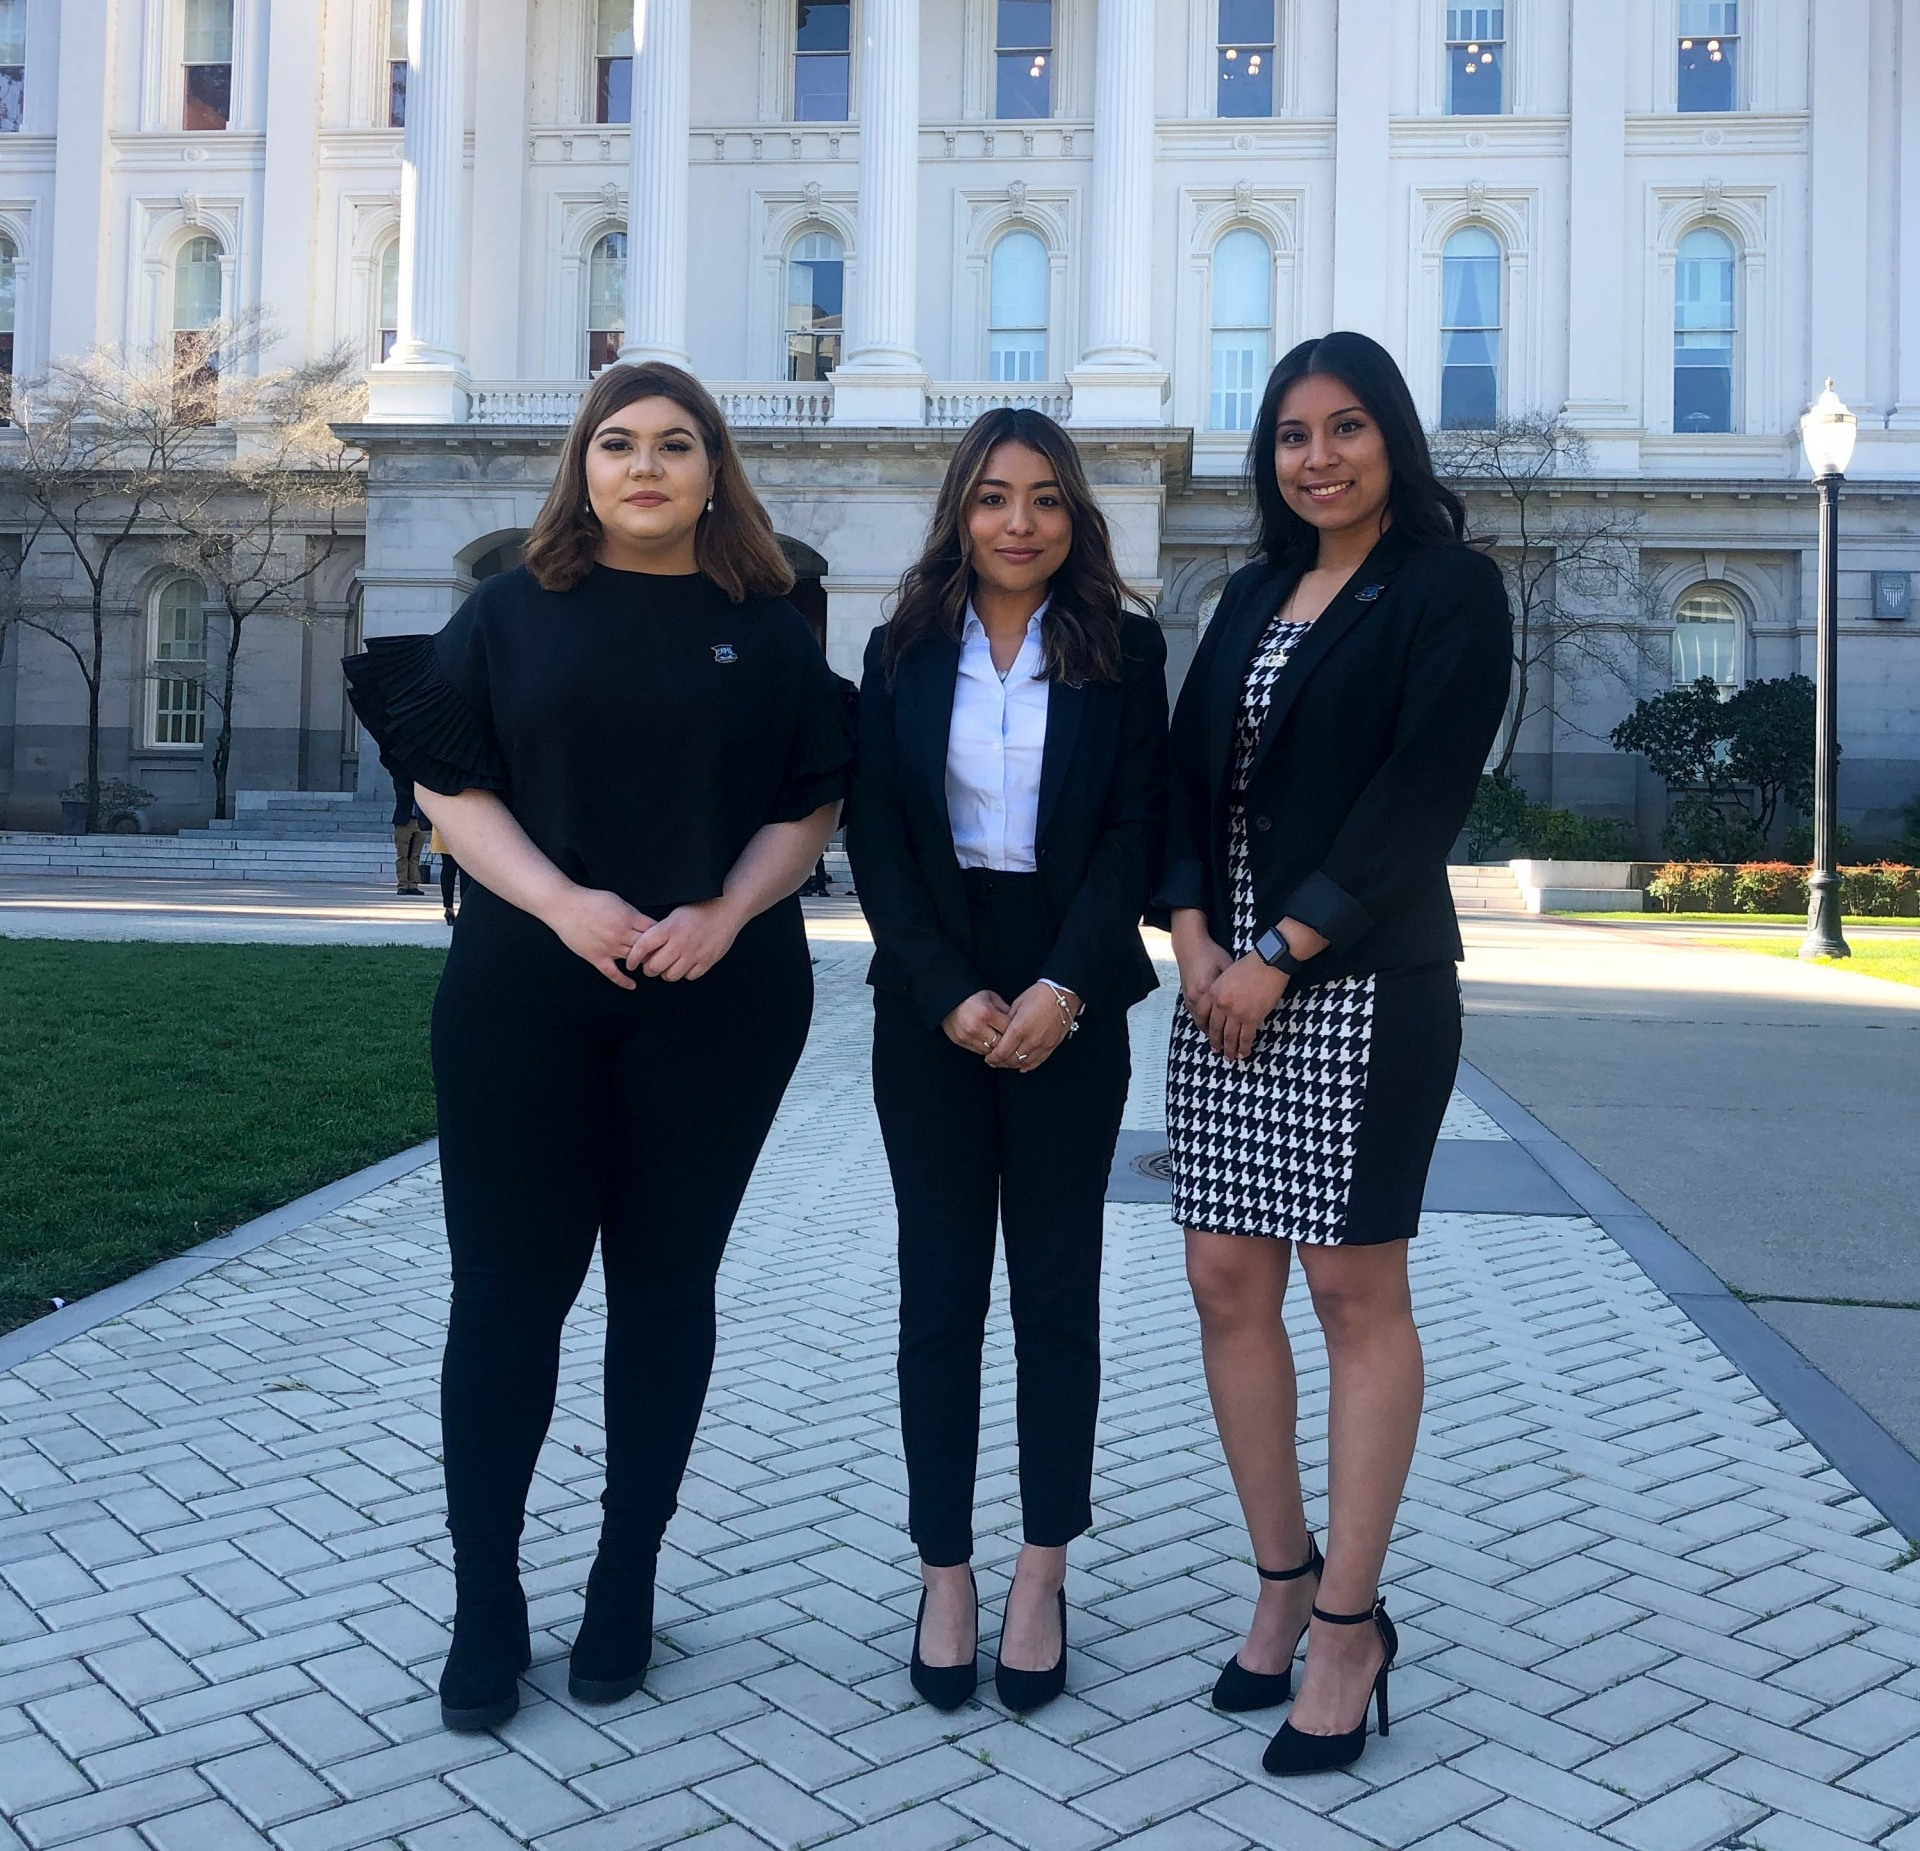 University of La Verne Students in Sacramento